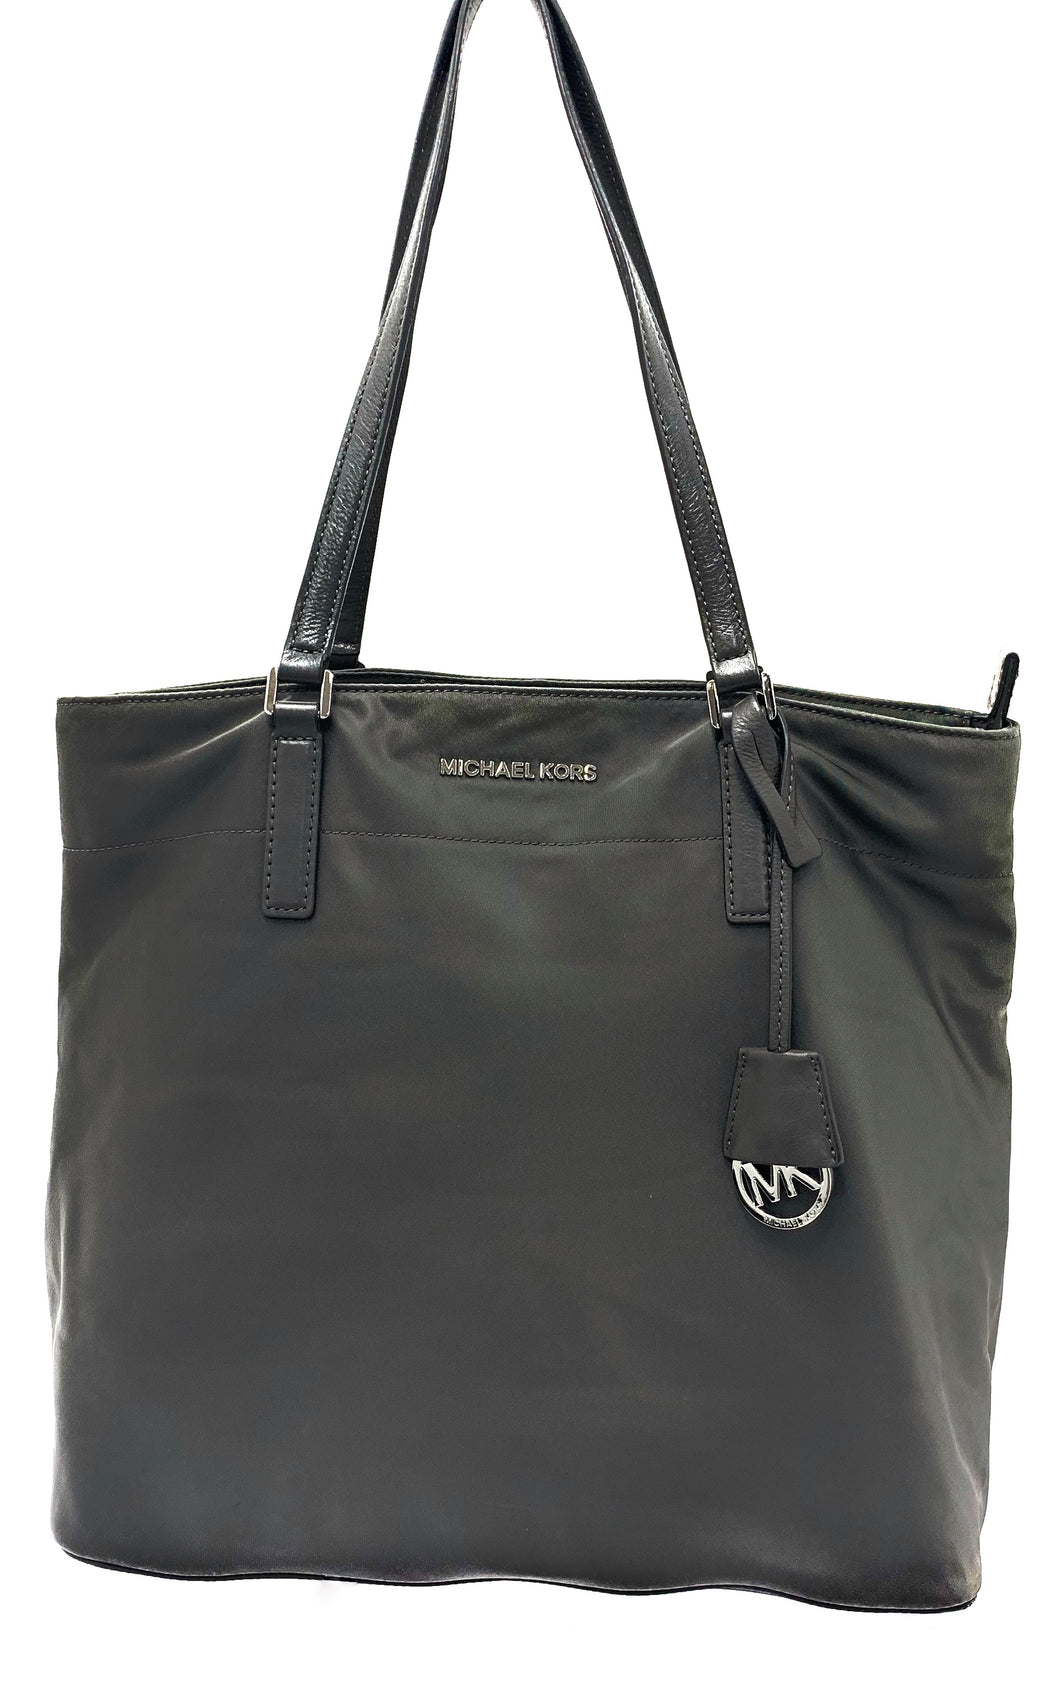 Michael Kors Morgan Nylon Tote